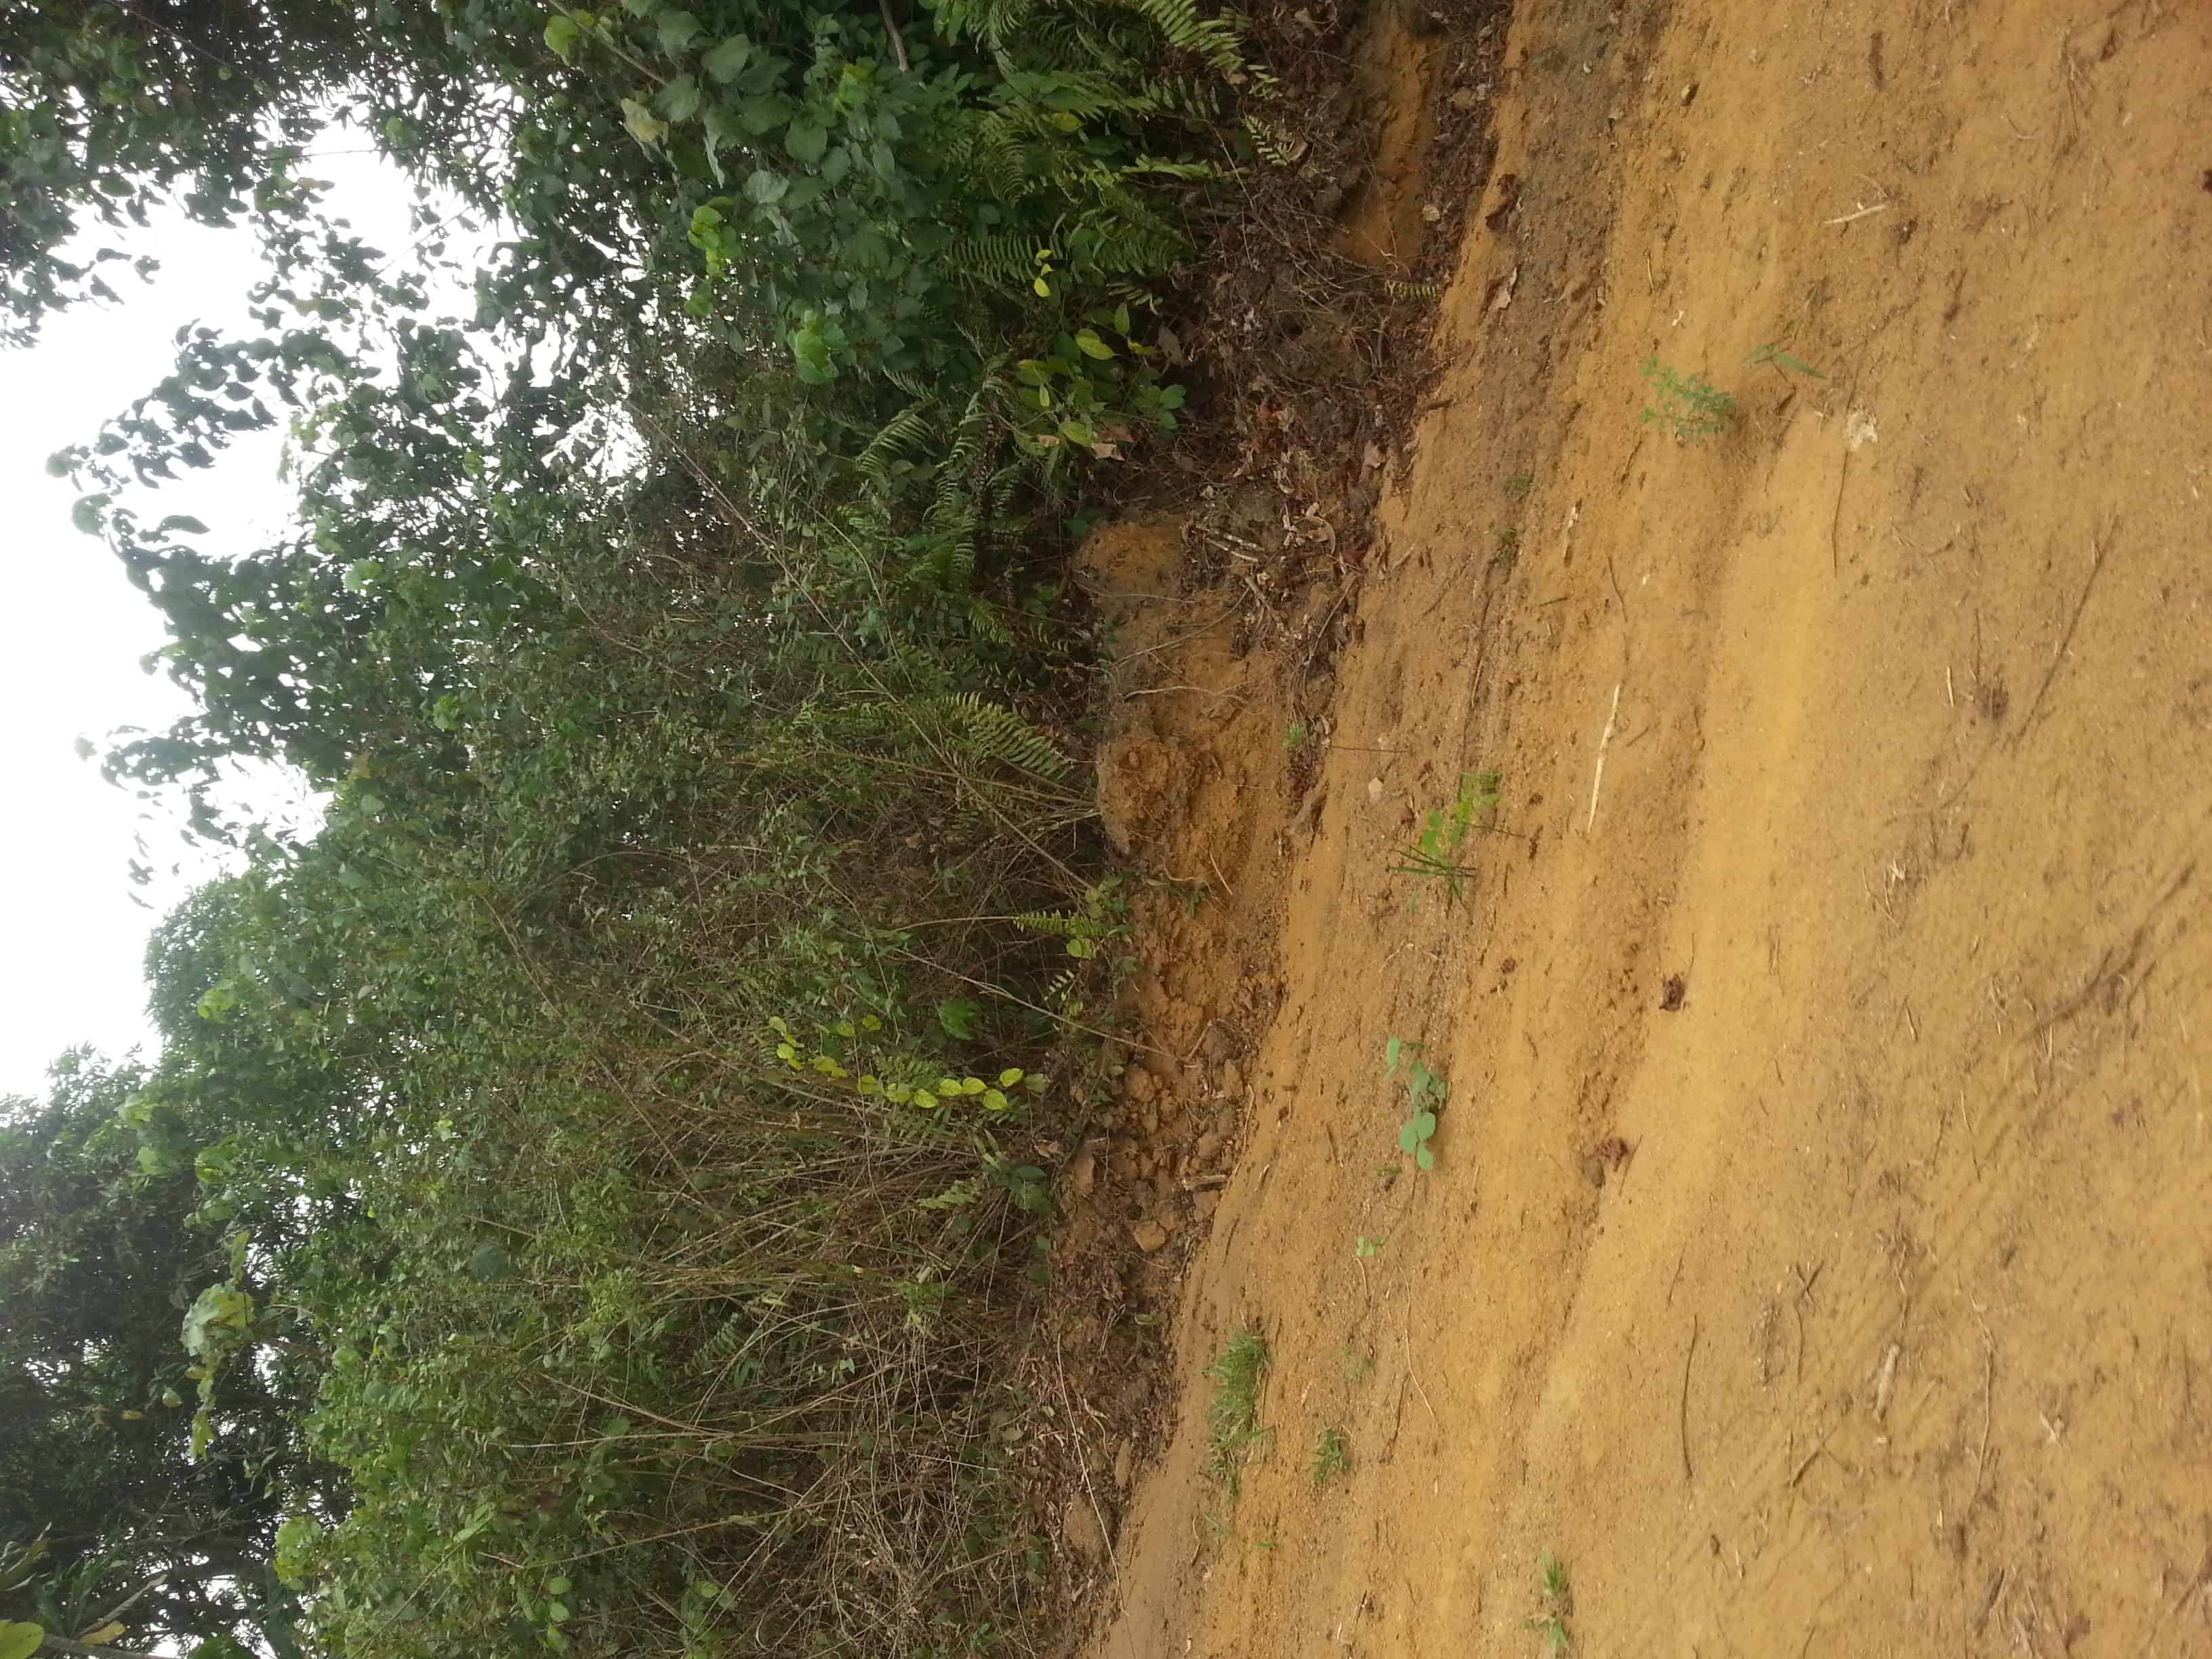 Land for sale at Douala, PK 19, Après l'université - 10000 m2 - 90 000 000 FCFA